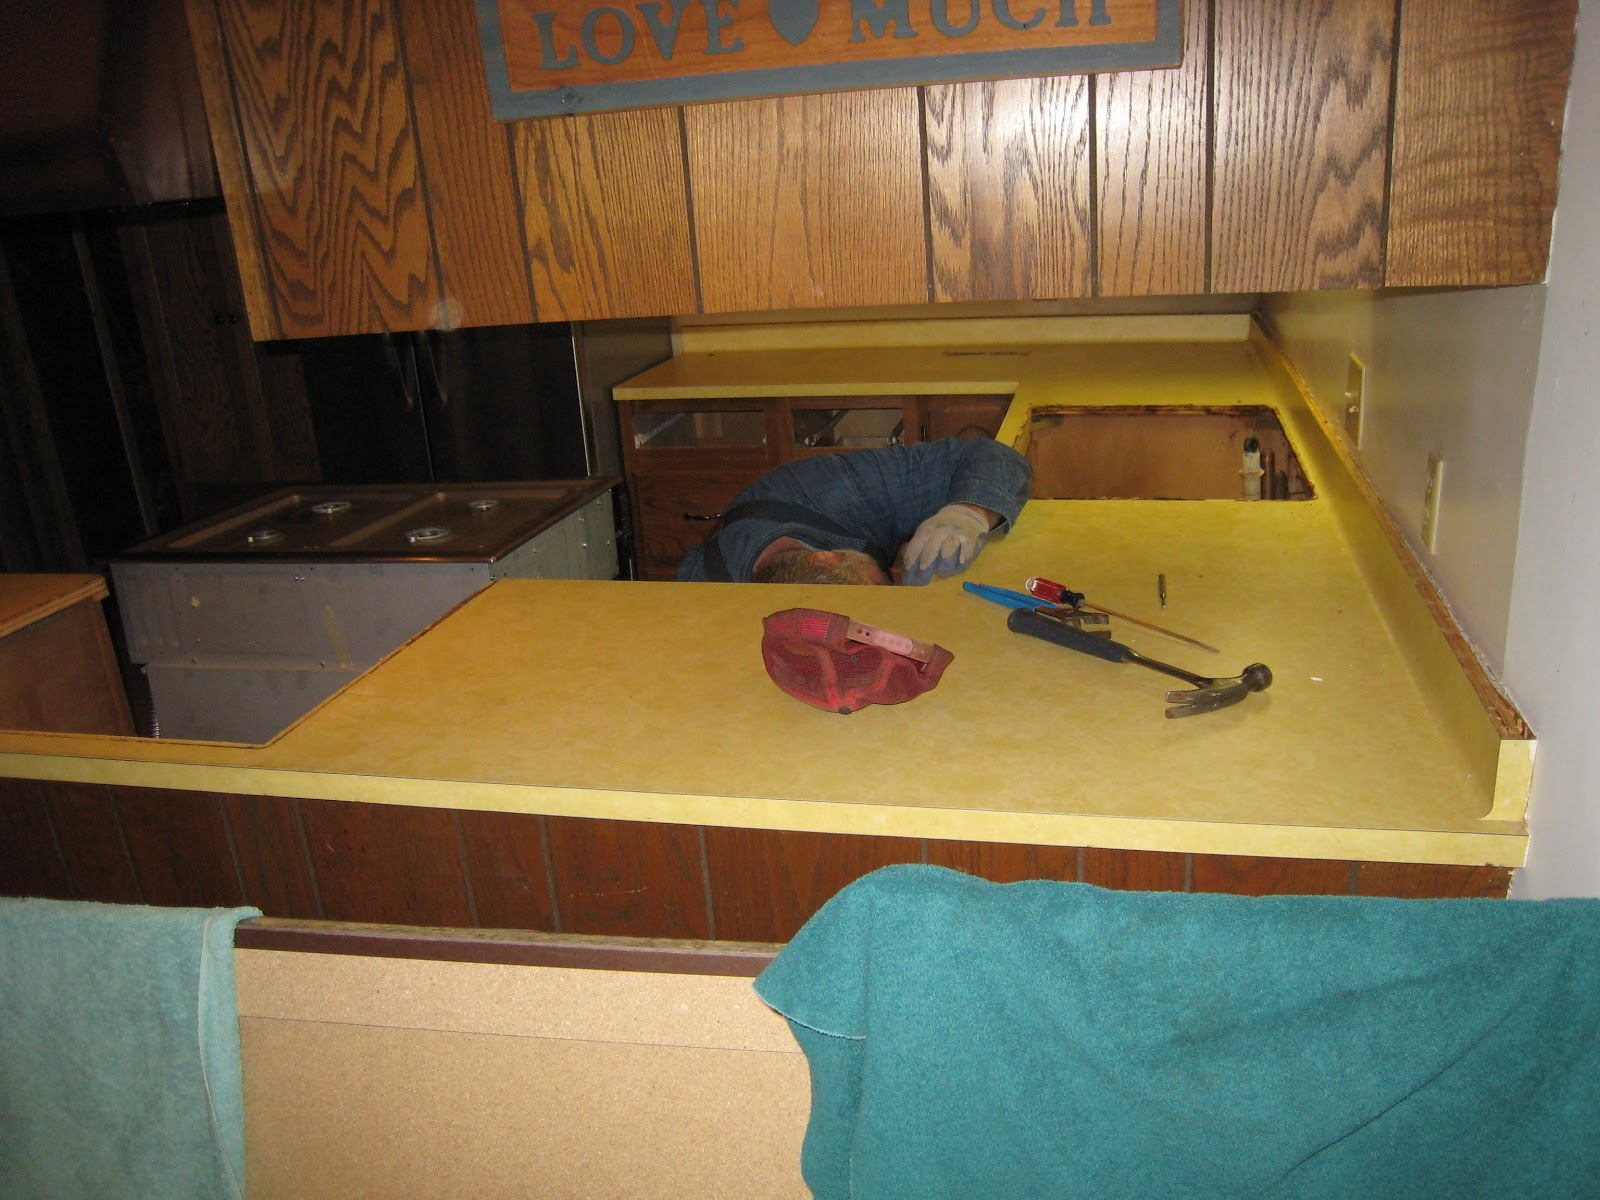 Remove Countertop Stove : MadCityMikes Blog: